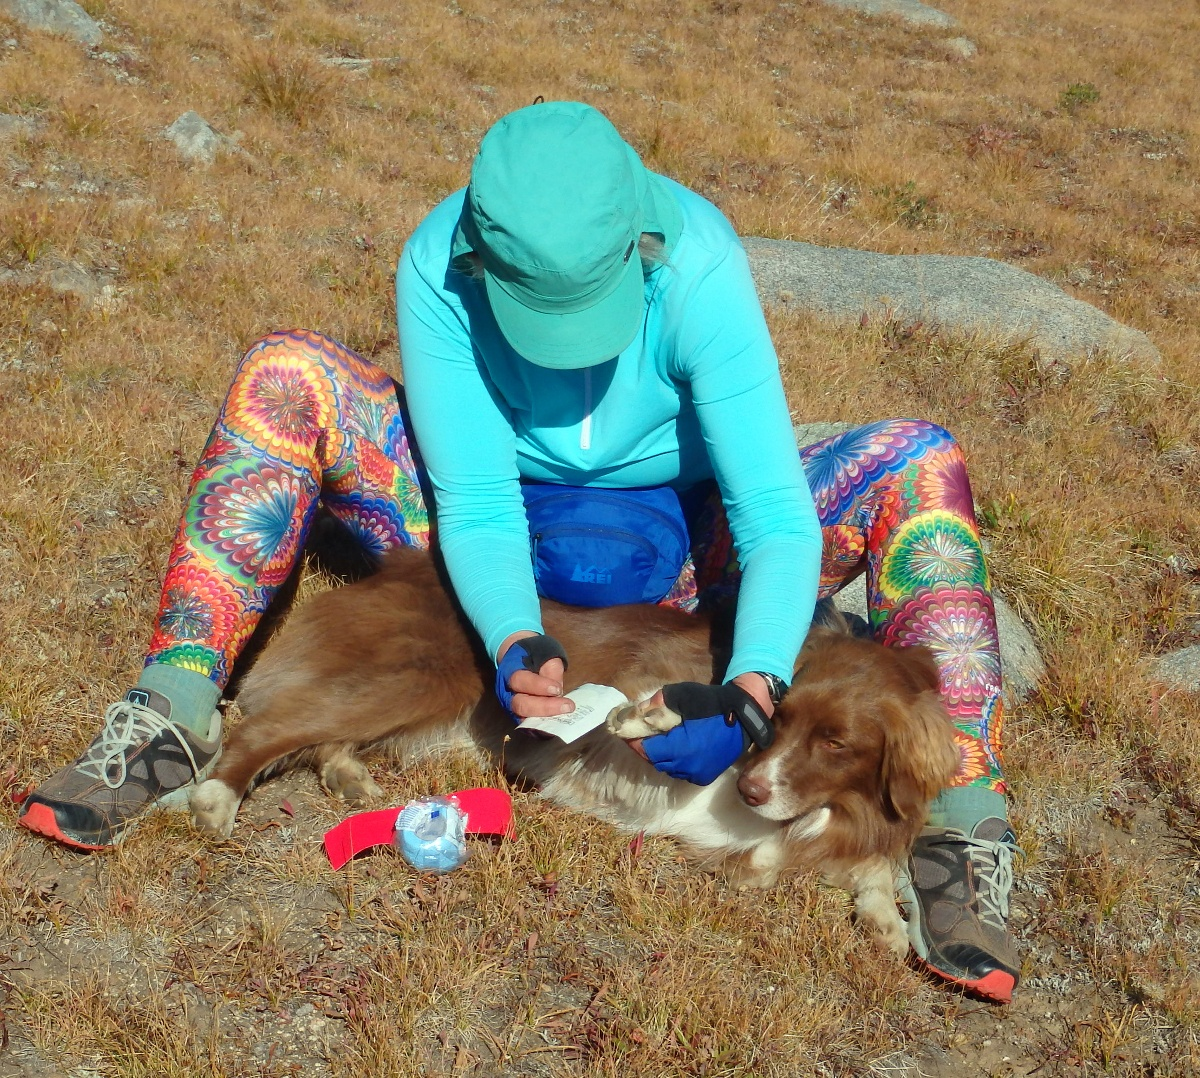 Person wearing colorful patterned leggings sits on the ground while caring for her dog's blistered paw